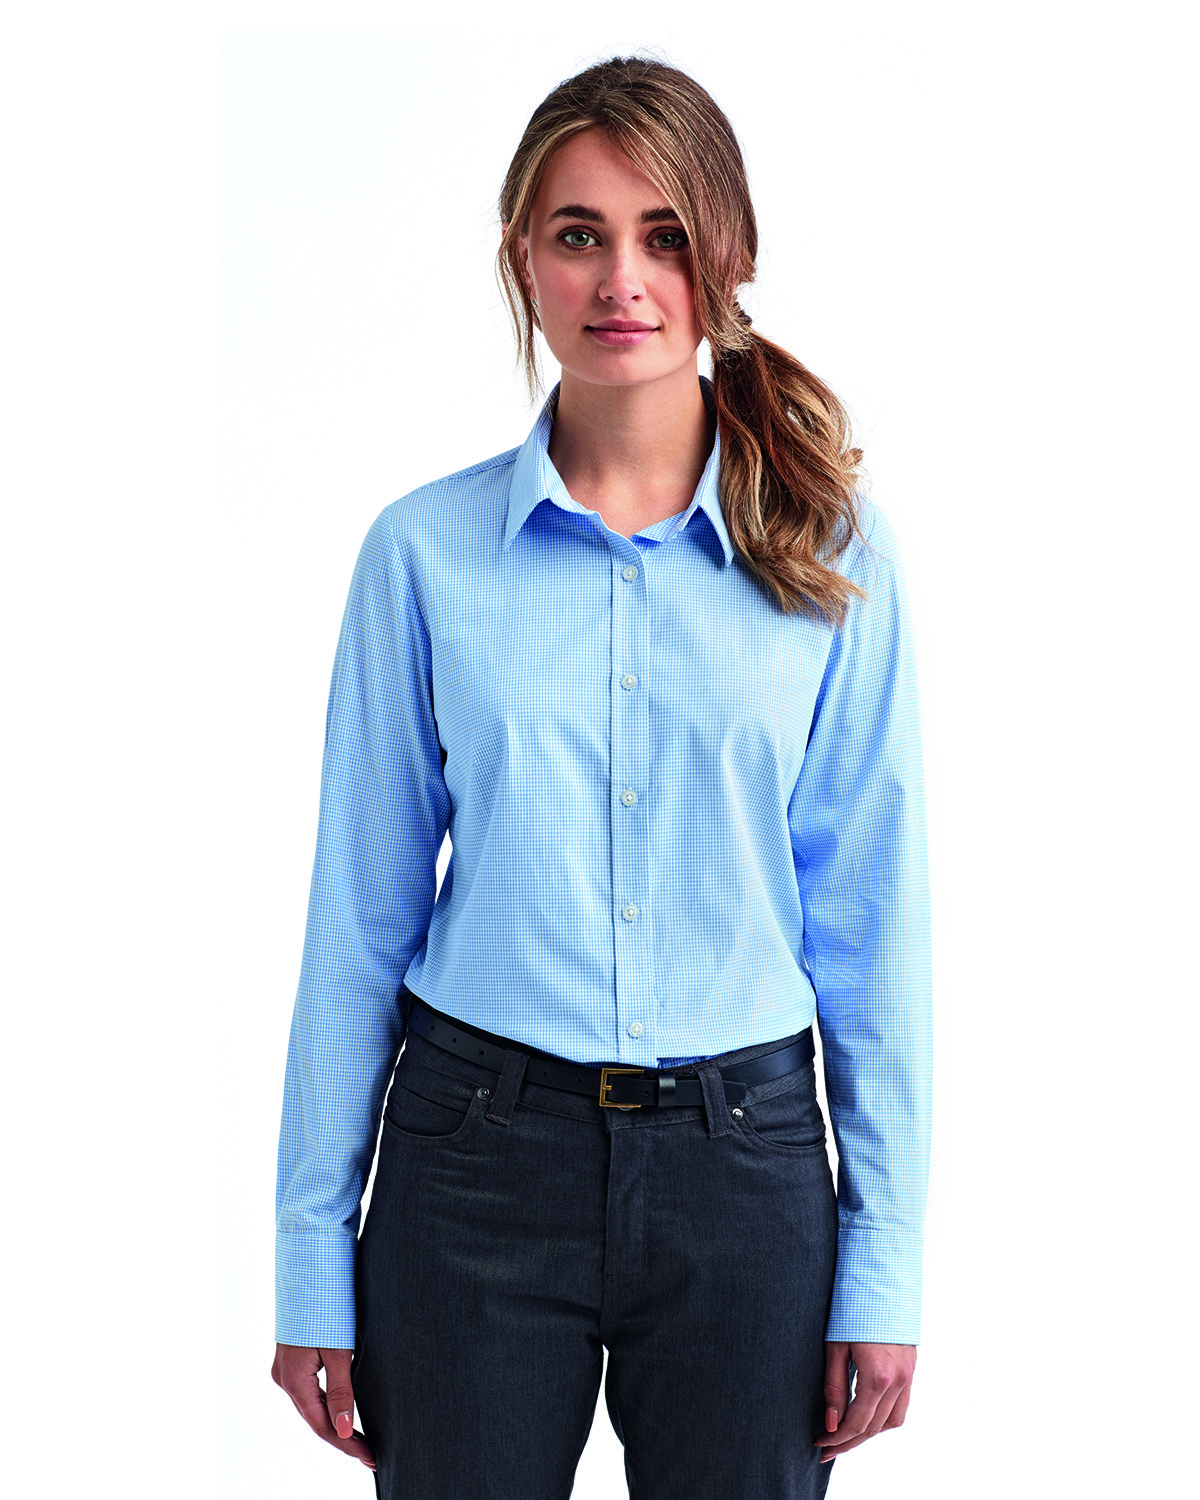 Artisan Collection by Reprime Ladies' Microcheck Gingham Long-Sleeve Cotton Shirt LT BLUE/ WHITE